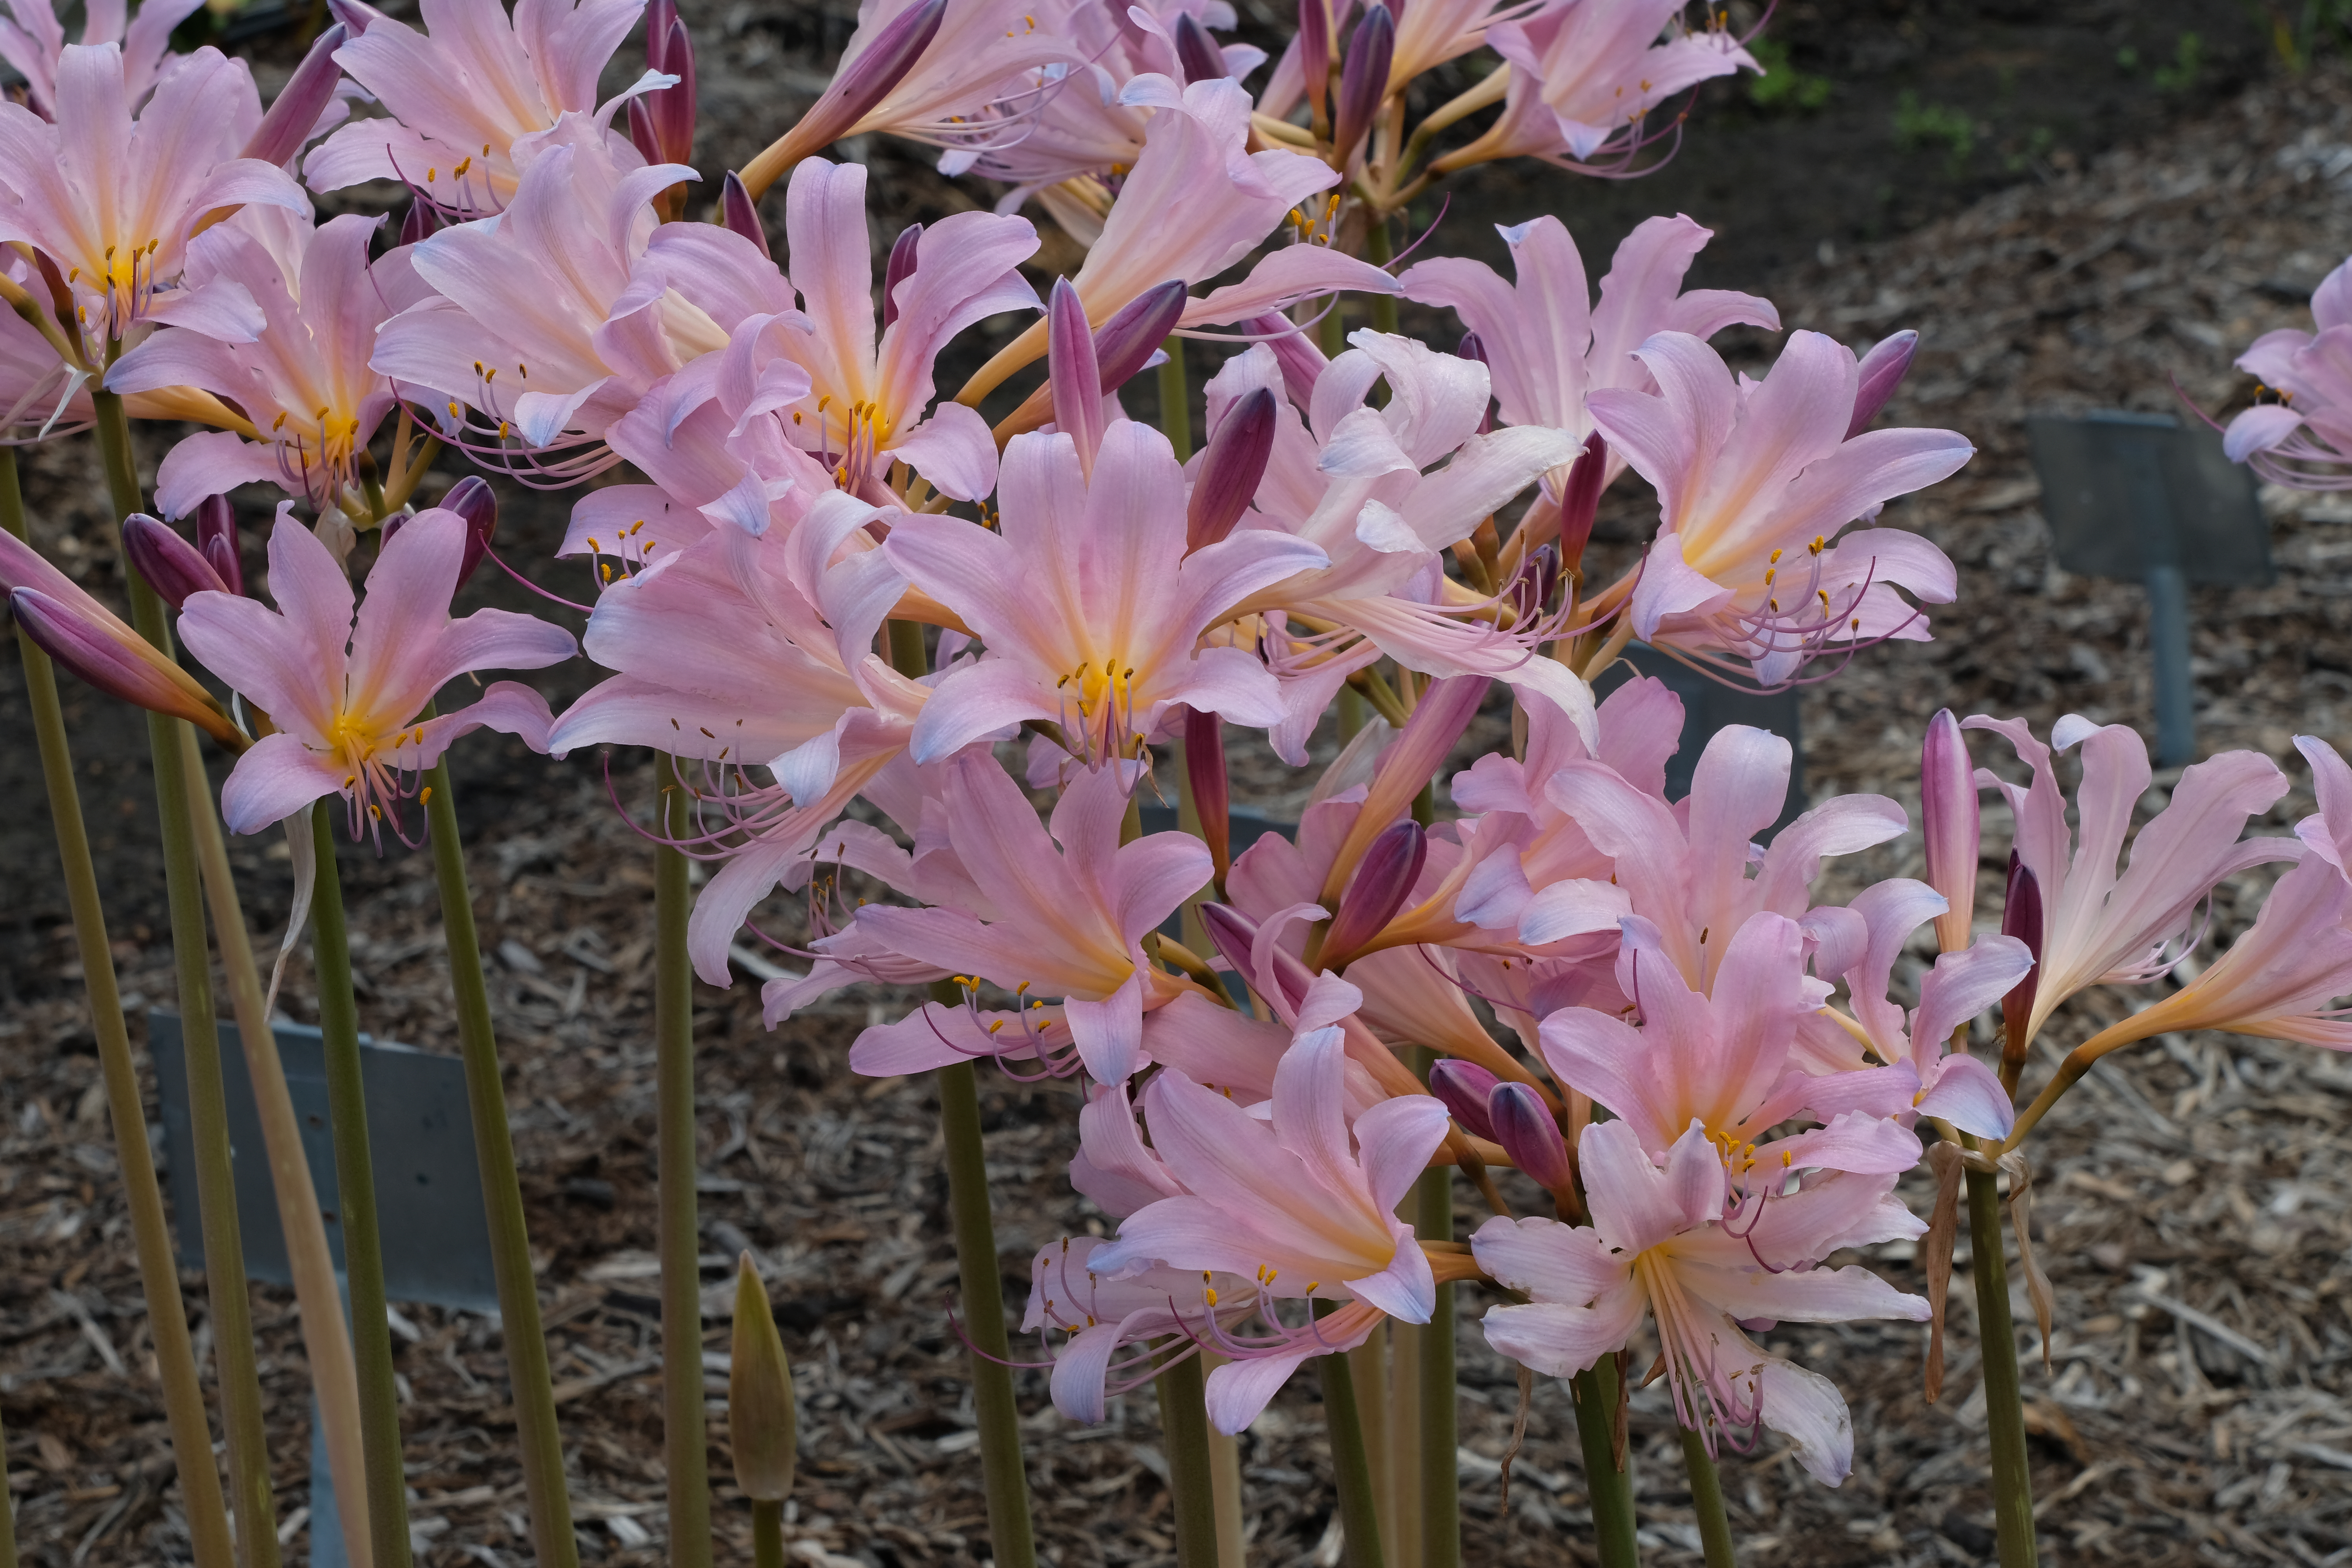 Lycoris x squamigera @ JLBG - a sterile hybrid of Lycoris sprengeri x longituba - same cross as Lycoris x incarnata, but despite being published earlier, we propose conserving the name as Lycoris 'Squamigera' for this widespread clone